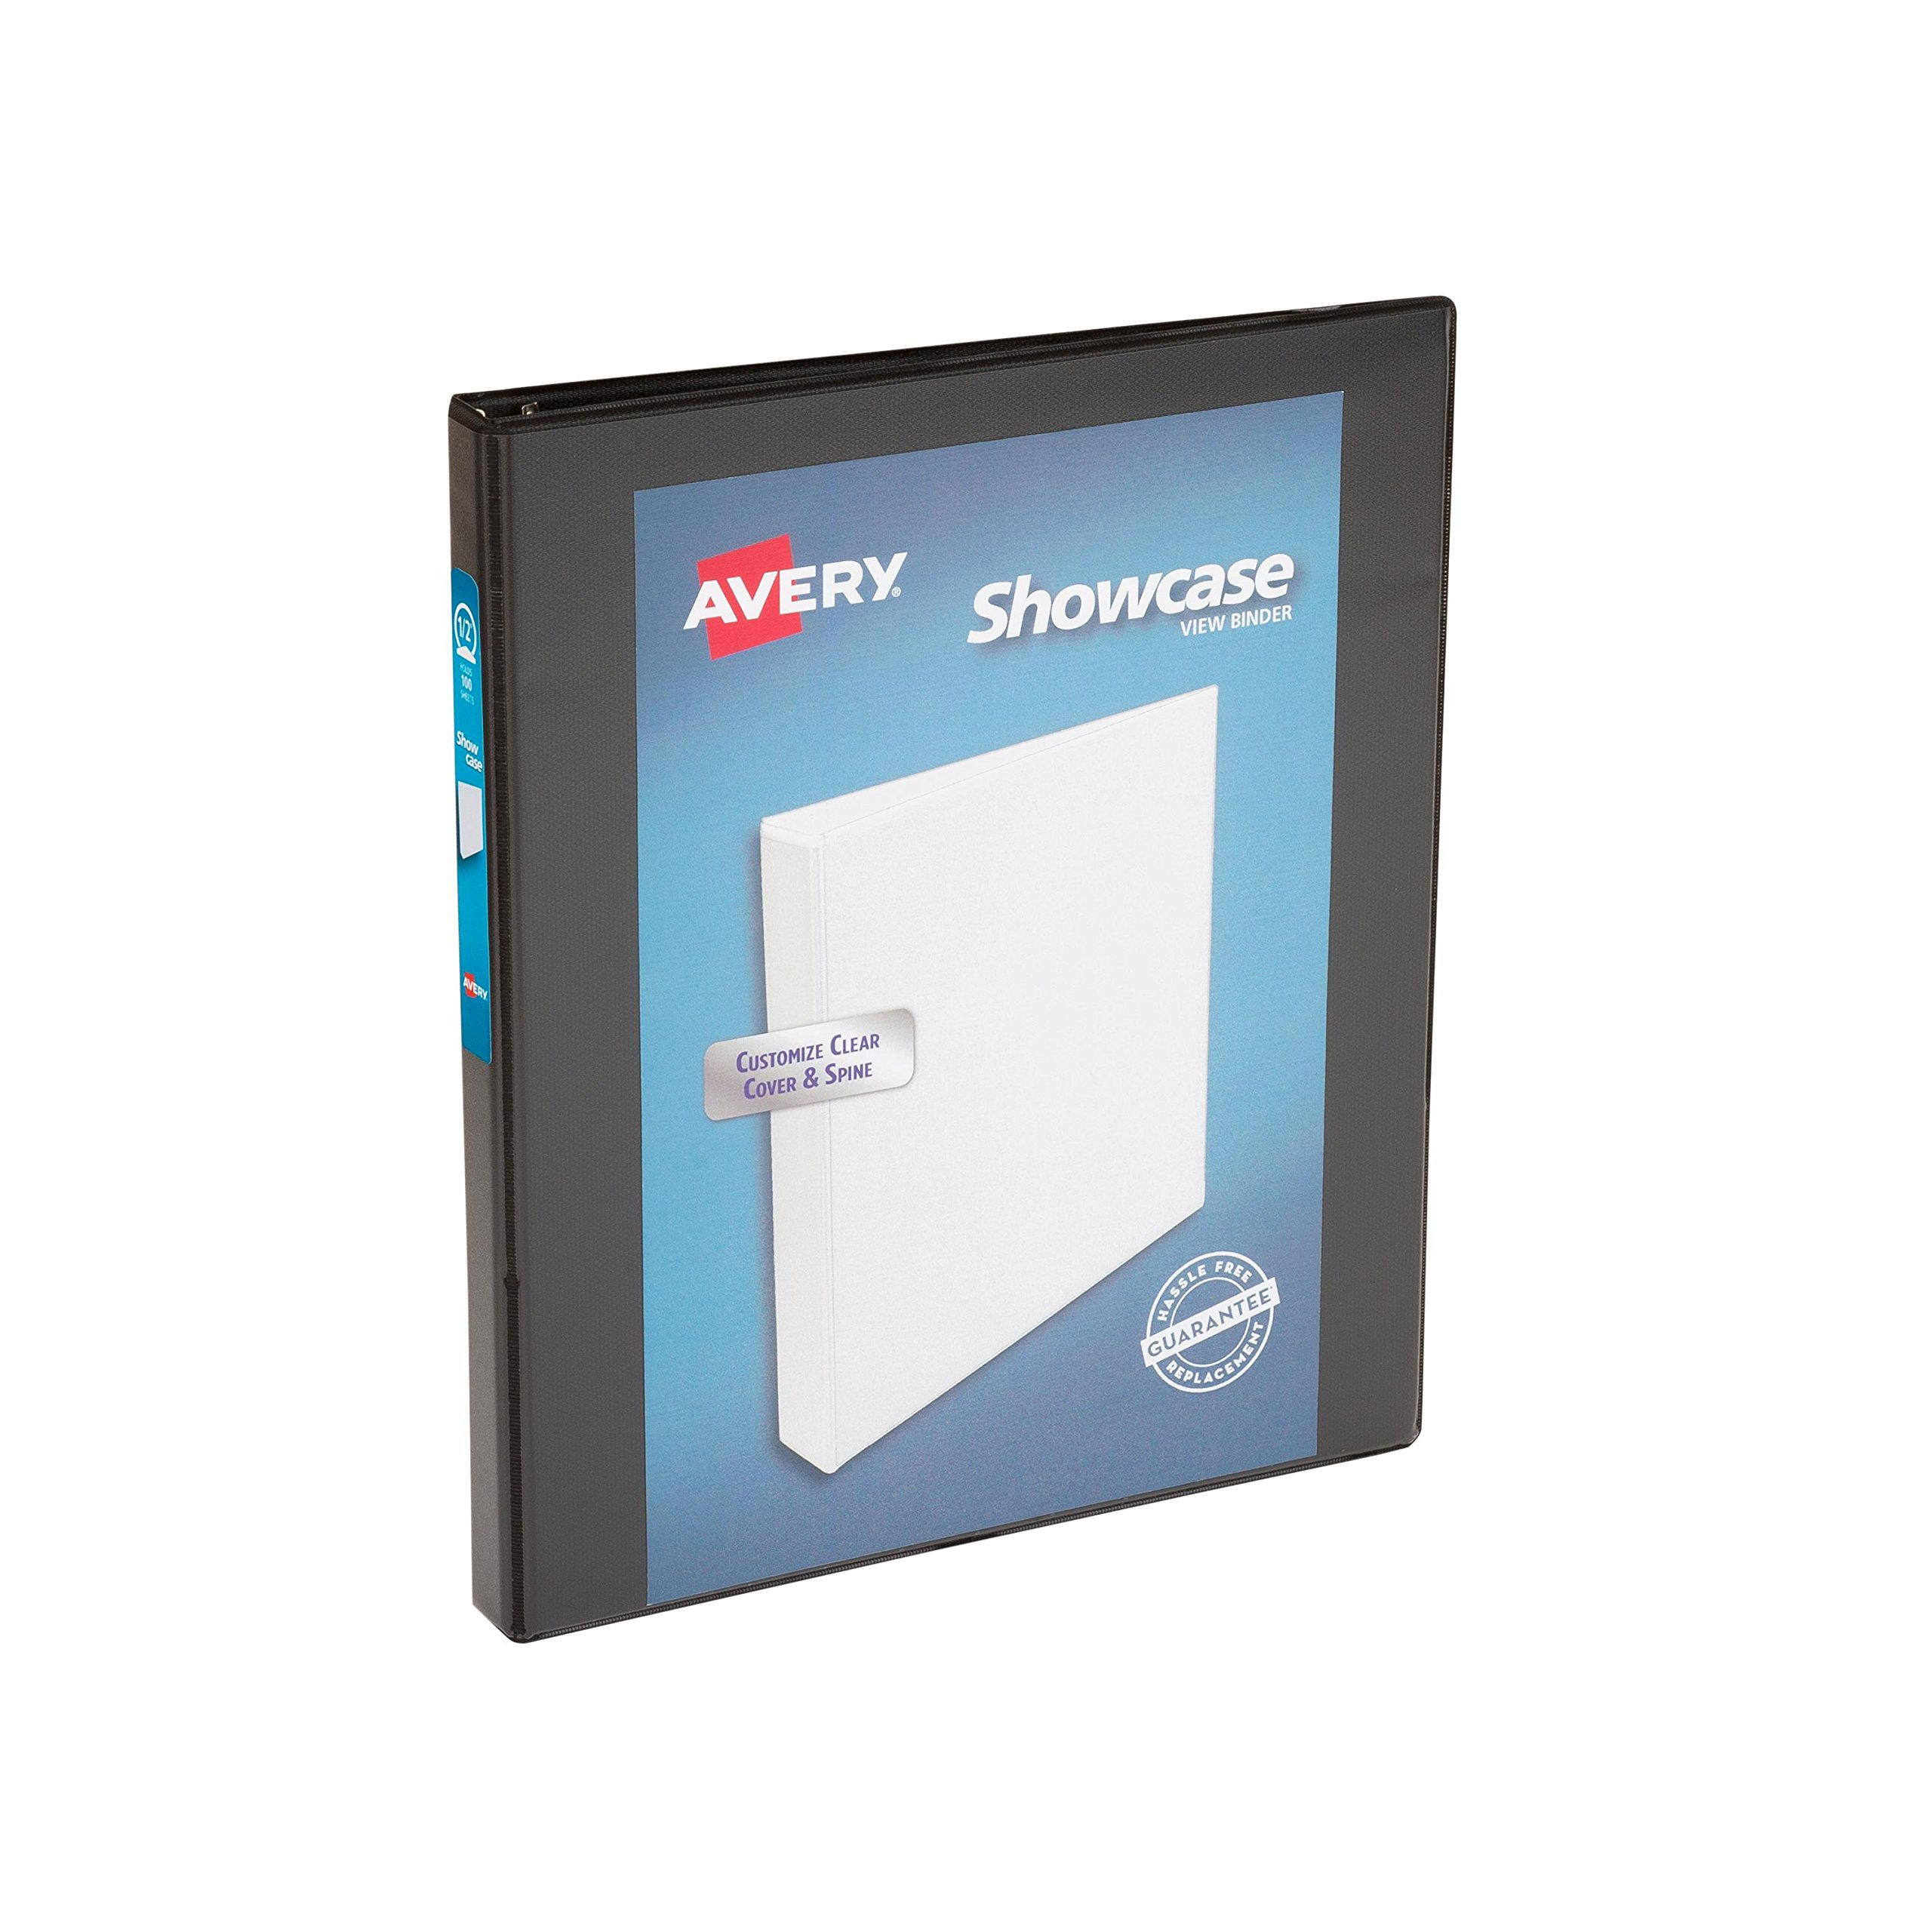 Avery Economy Showcase View Binder with 0.5 Inch Round Ring, Black, One Binder (19550)